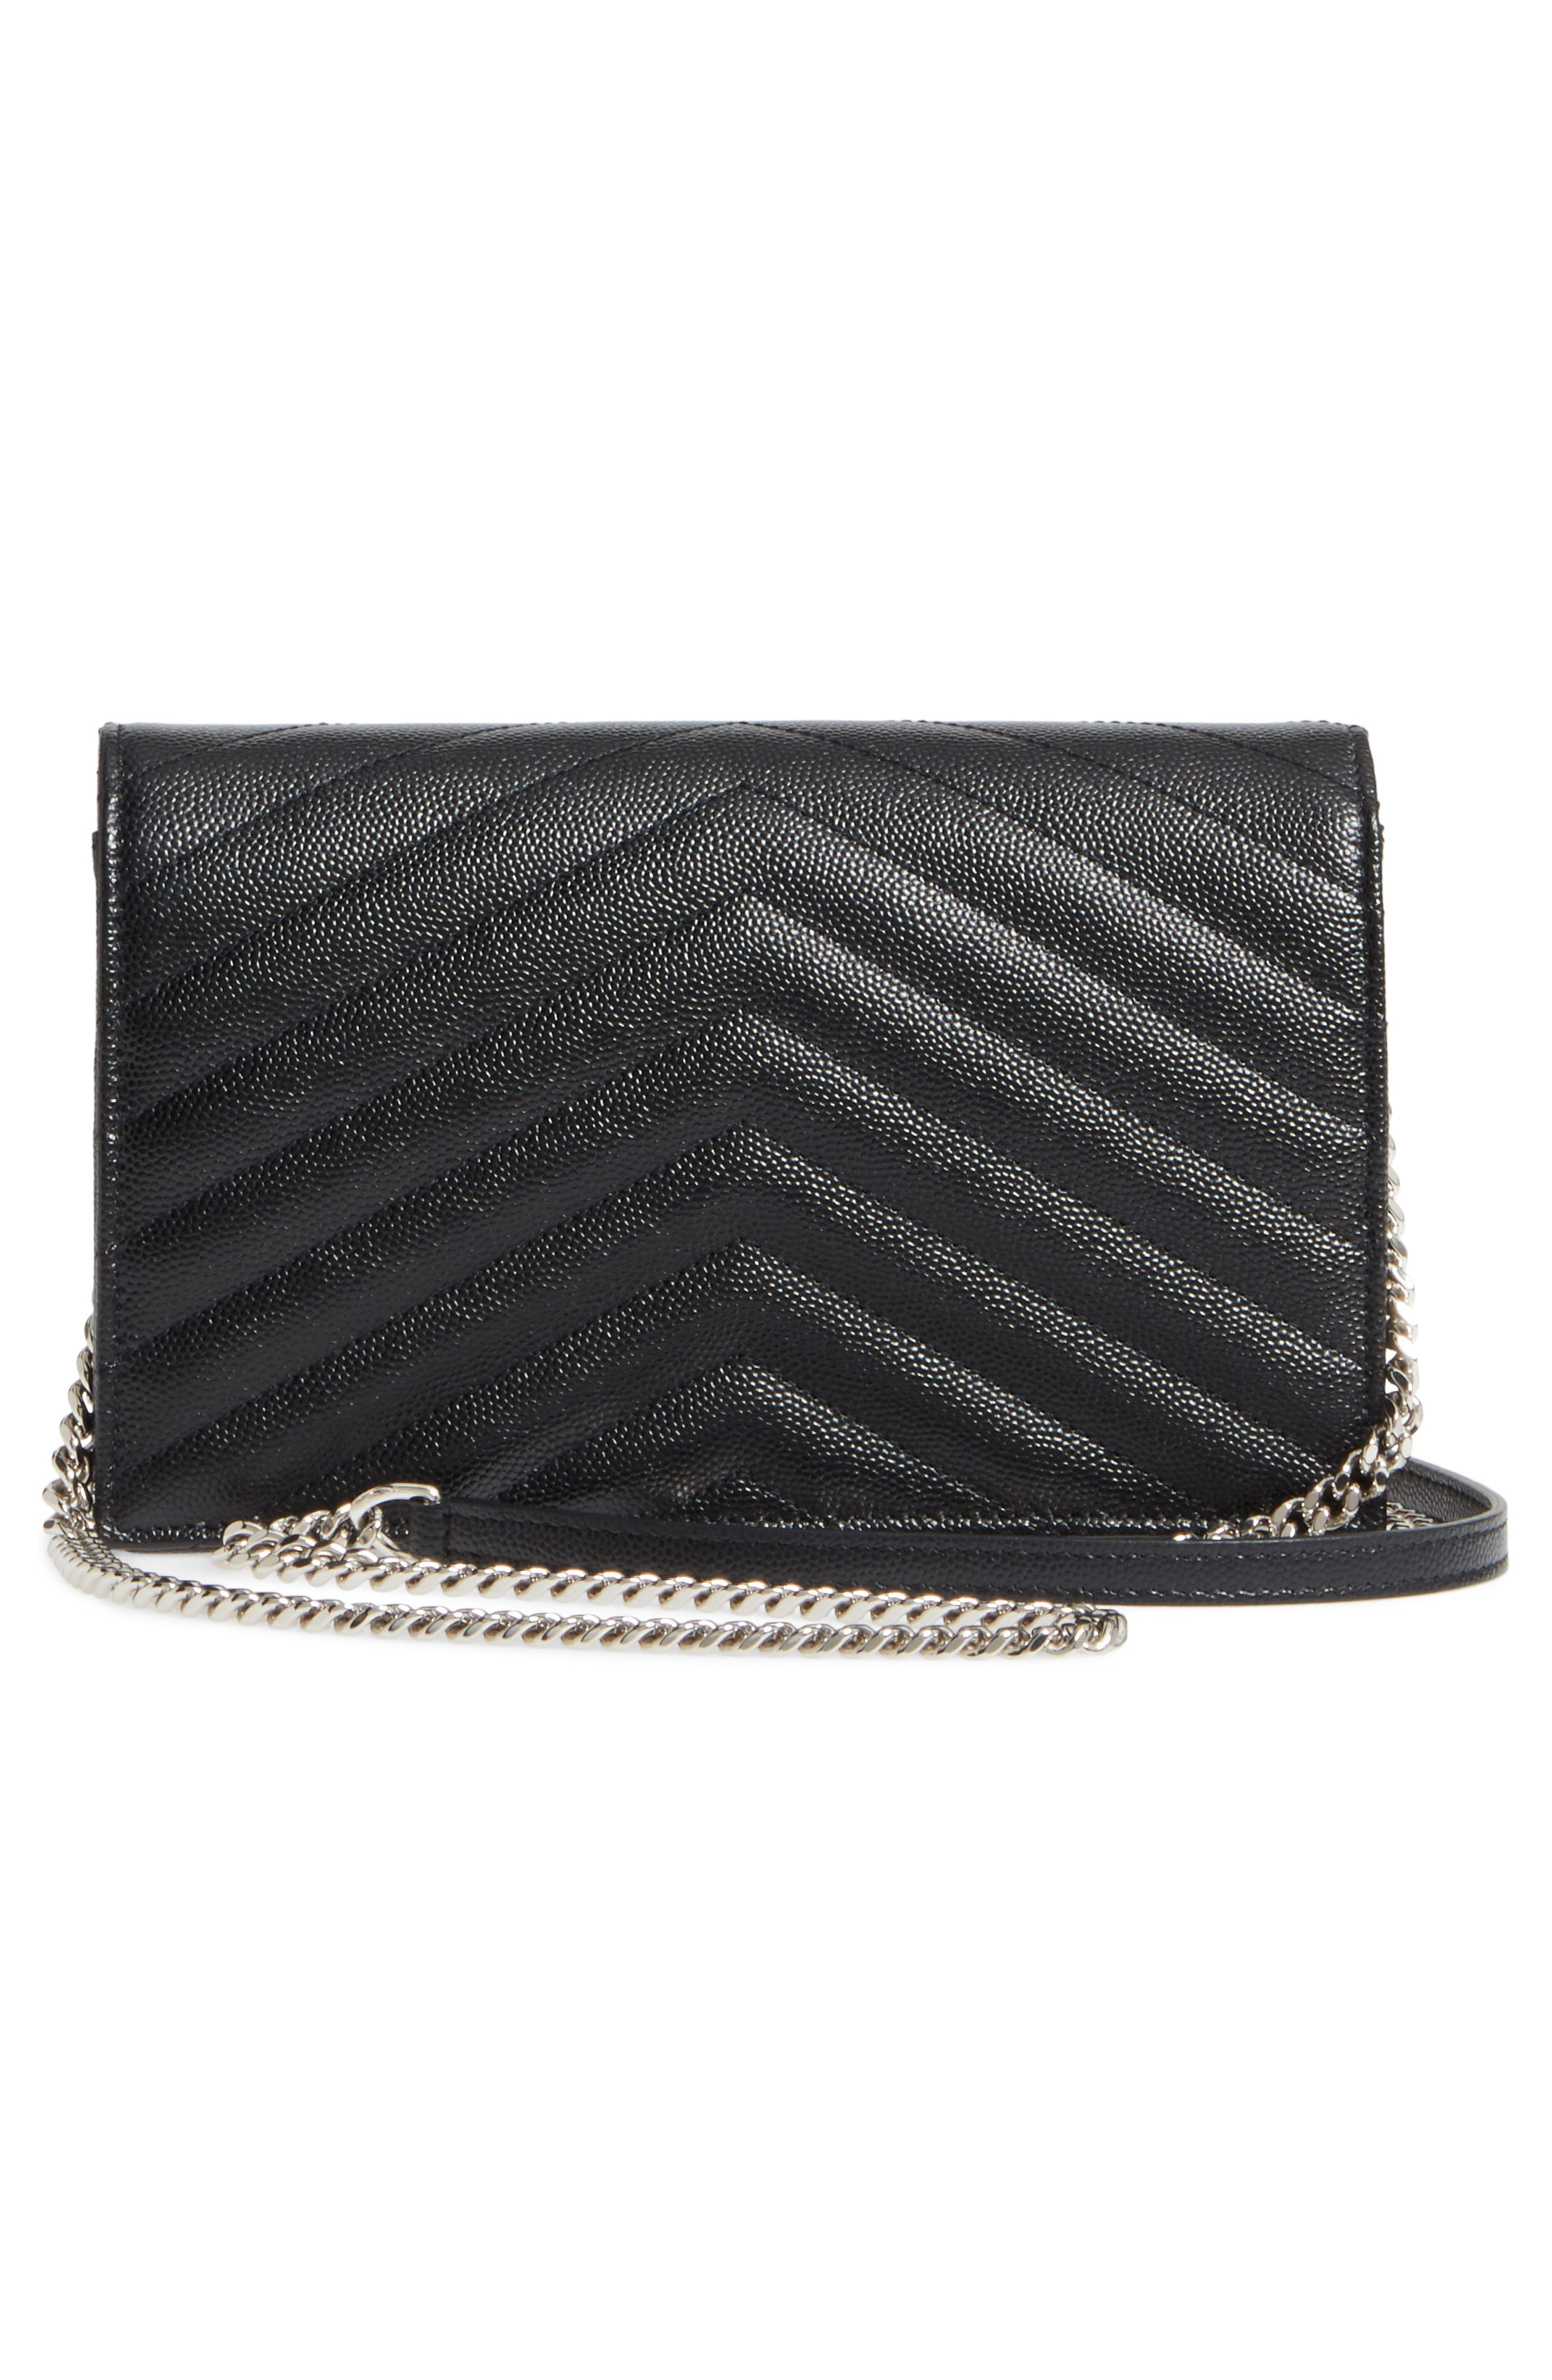 SAINT LAURENT, Quilted Calfskin Leather Wallet on a Chain, Alternate thumbnail 3, color, NOIR